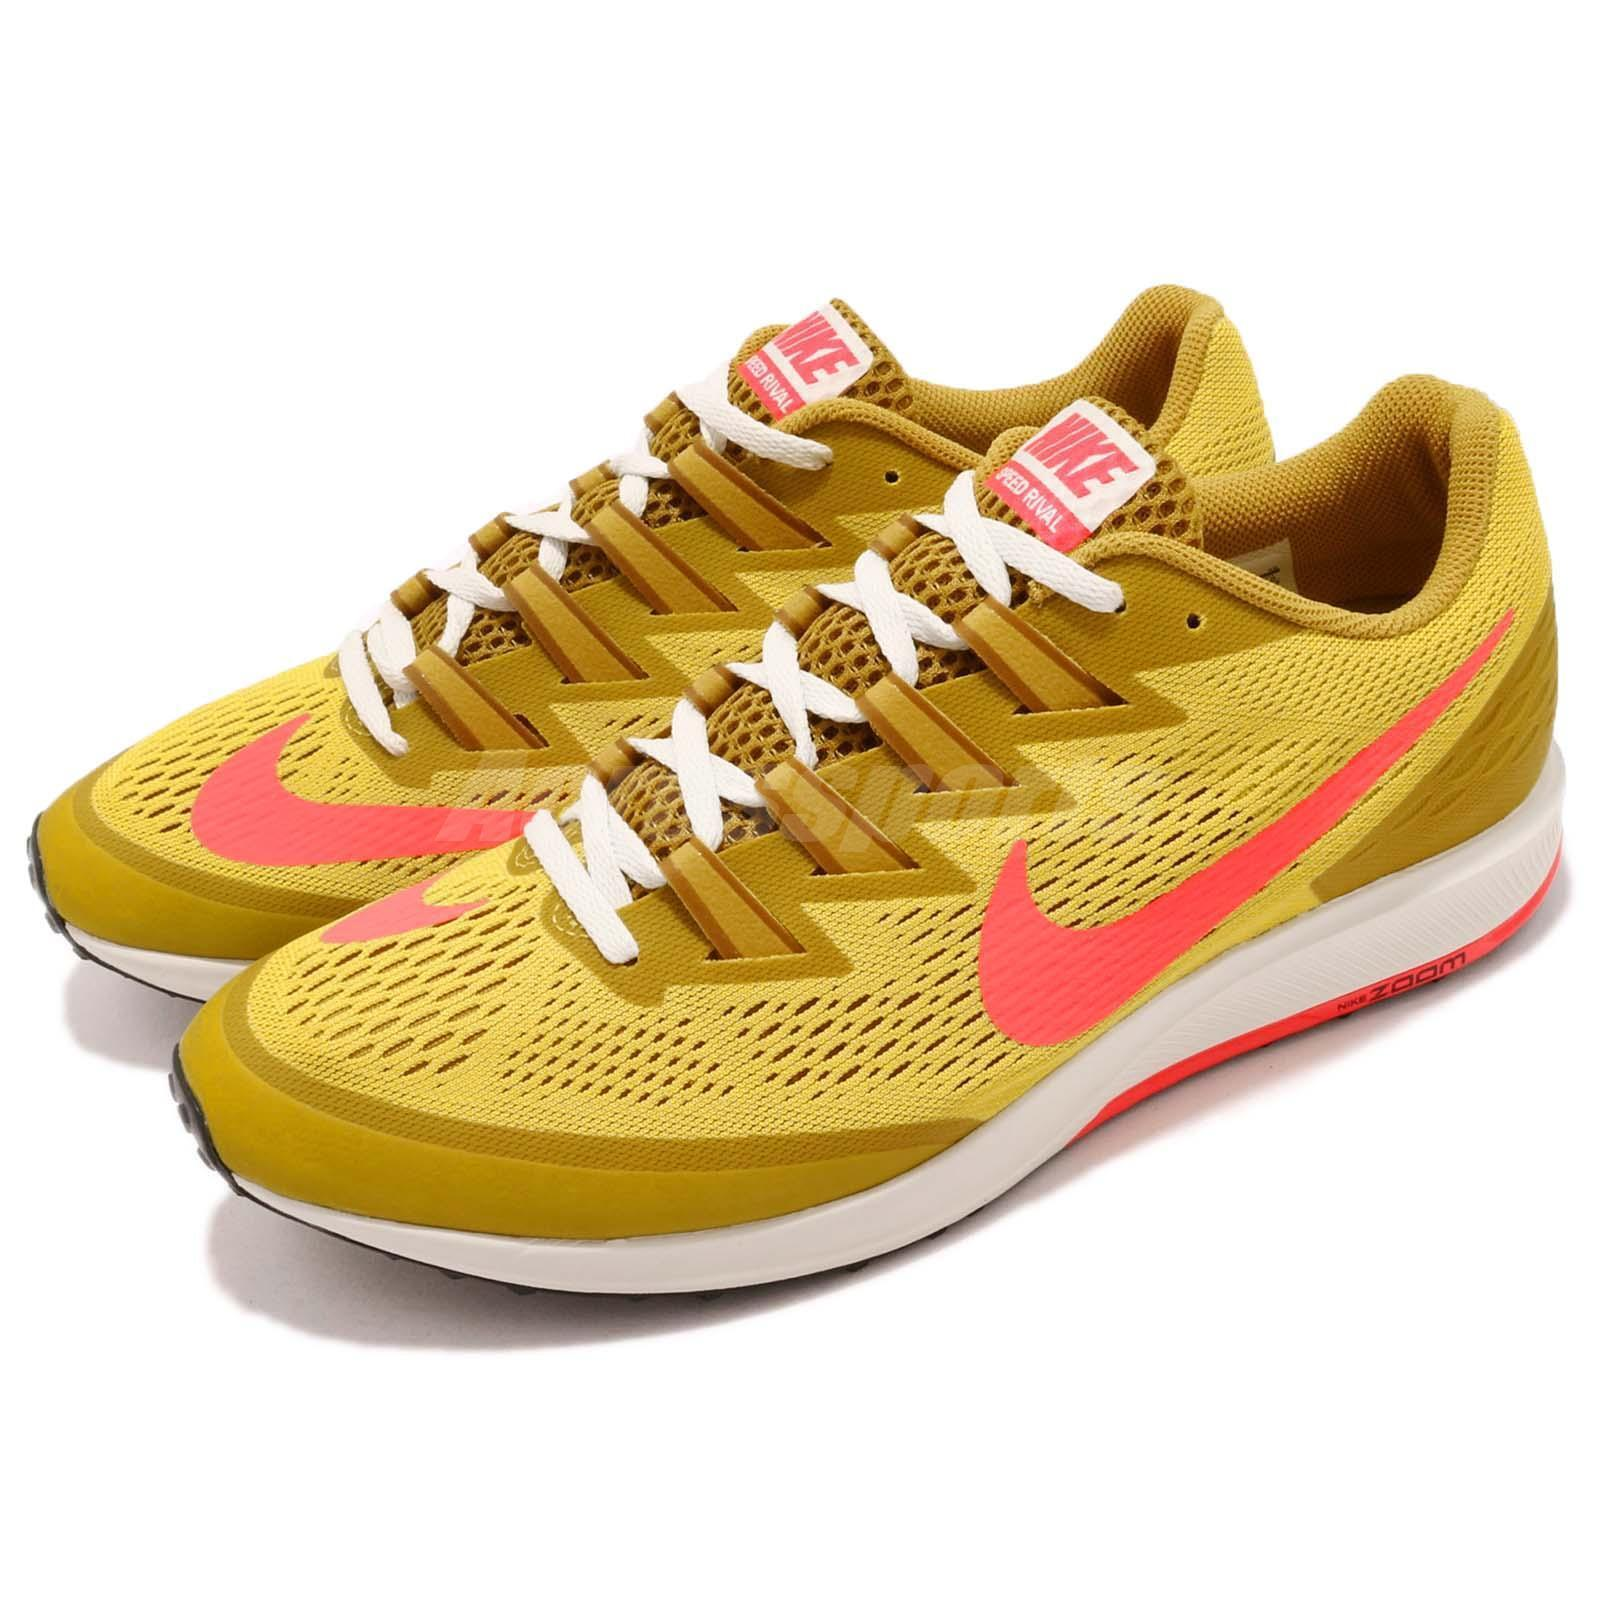 best website a8333 cd812 ... Nike Air Zoom Zoom Zoom Speed Rival 6 VI Men Women Running Shoes  Sneakers Trainers Pick